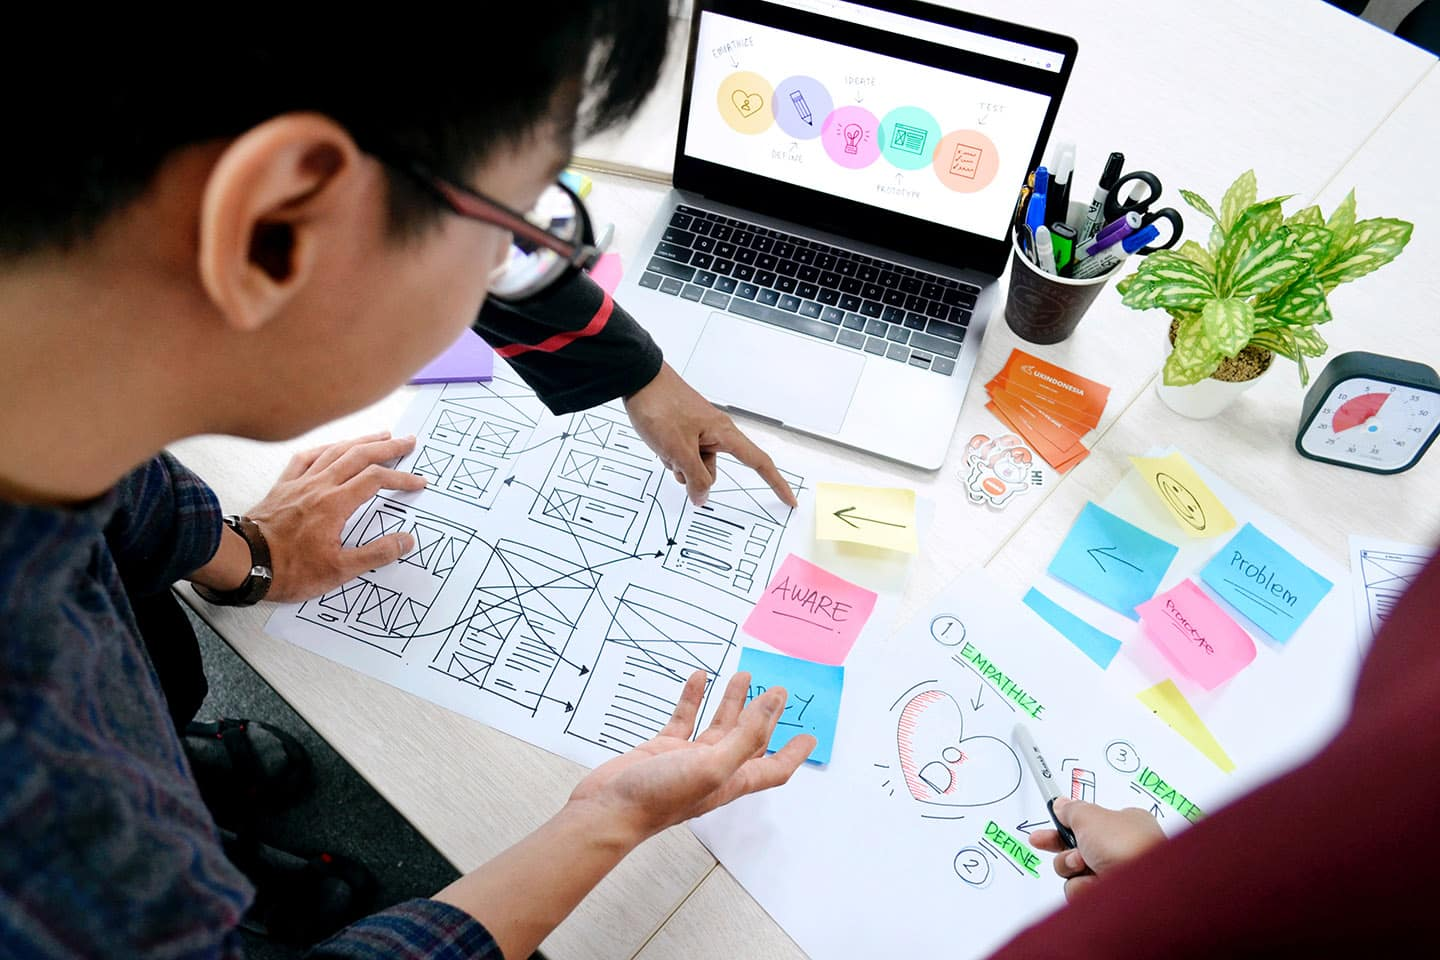 discovery process creative repute collaboration quality graphic design agency team work market research user personas analysis